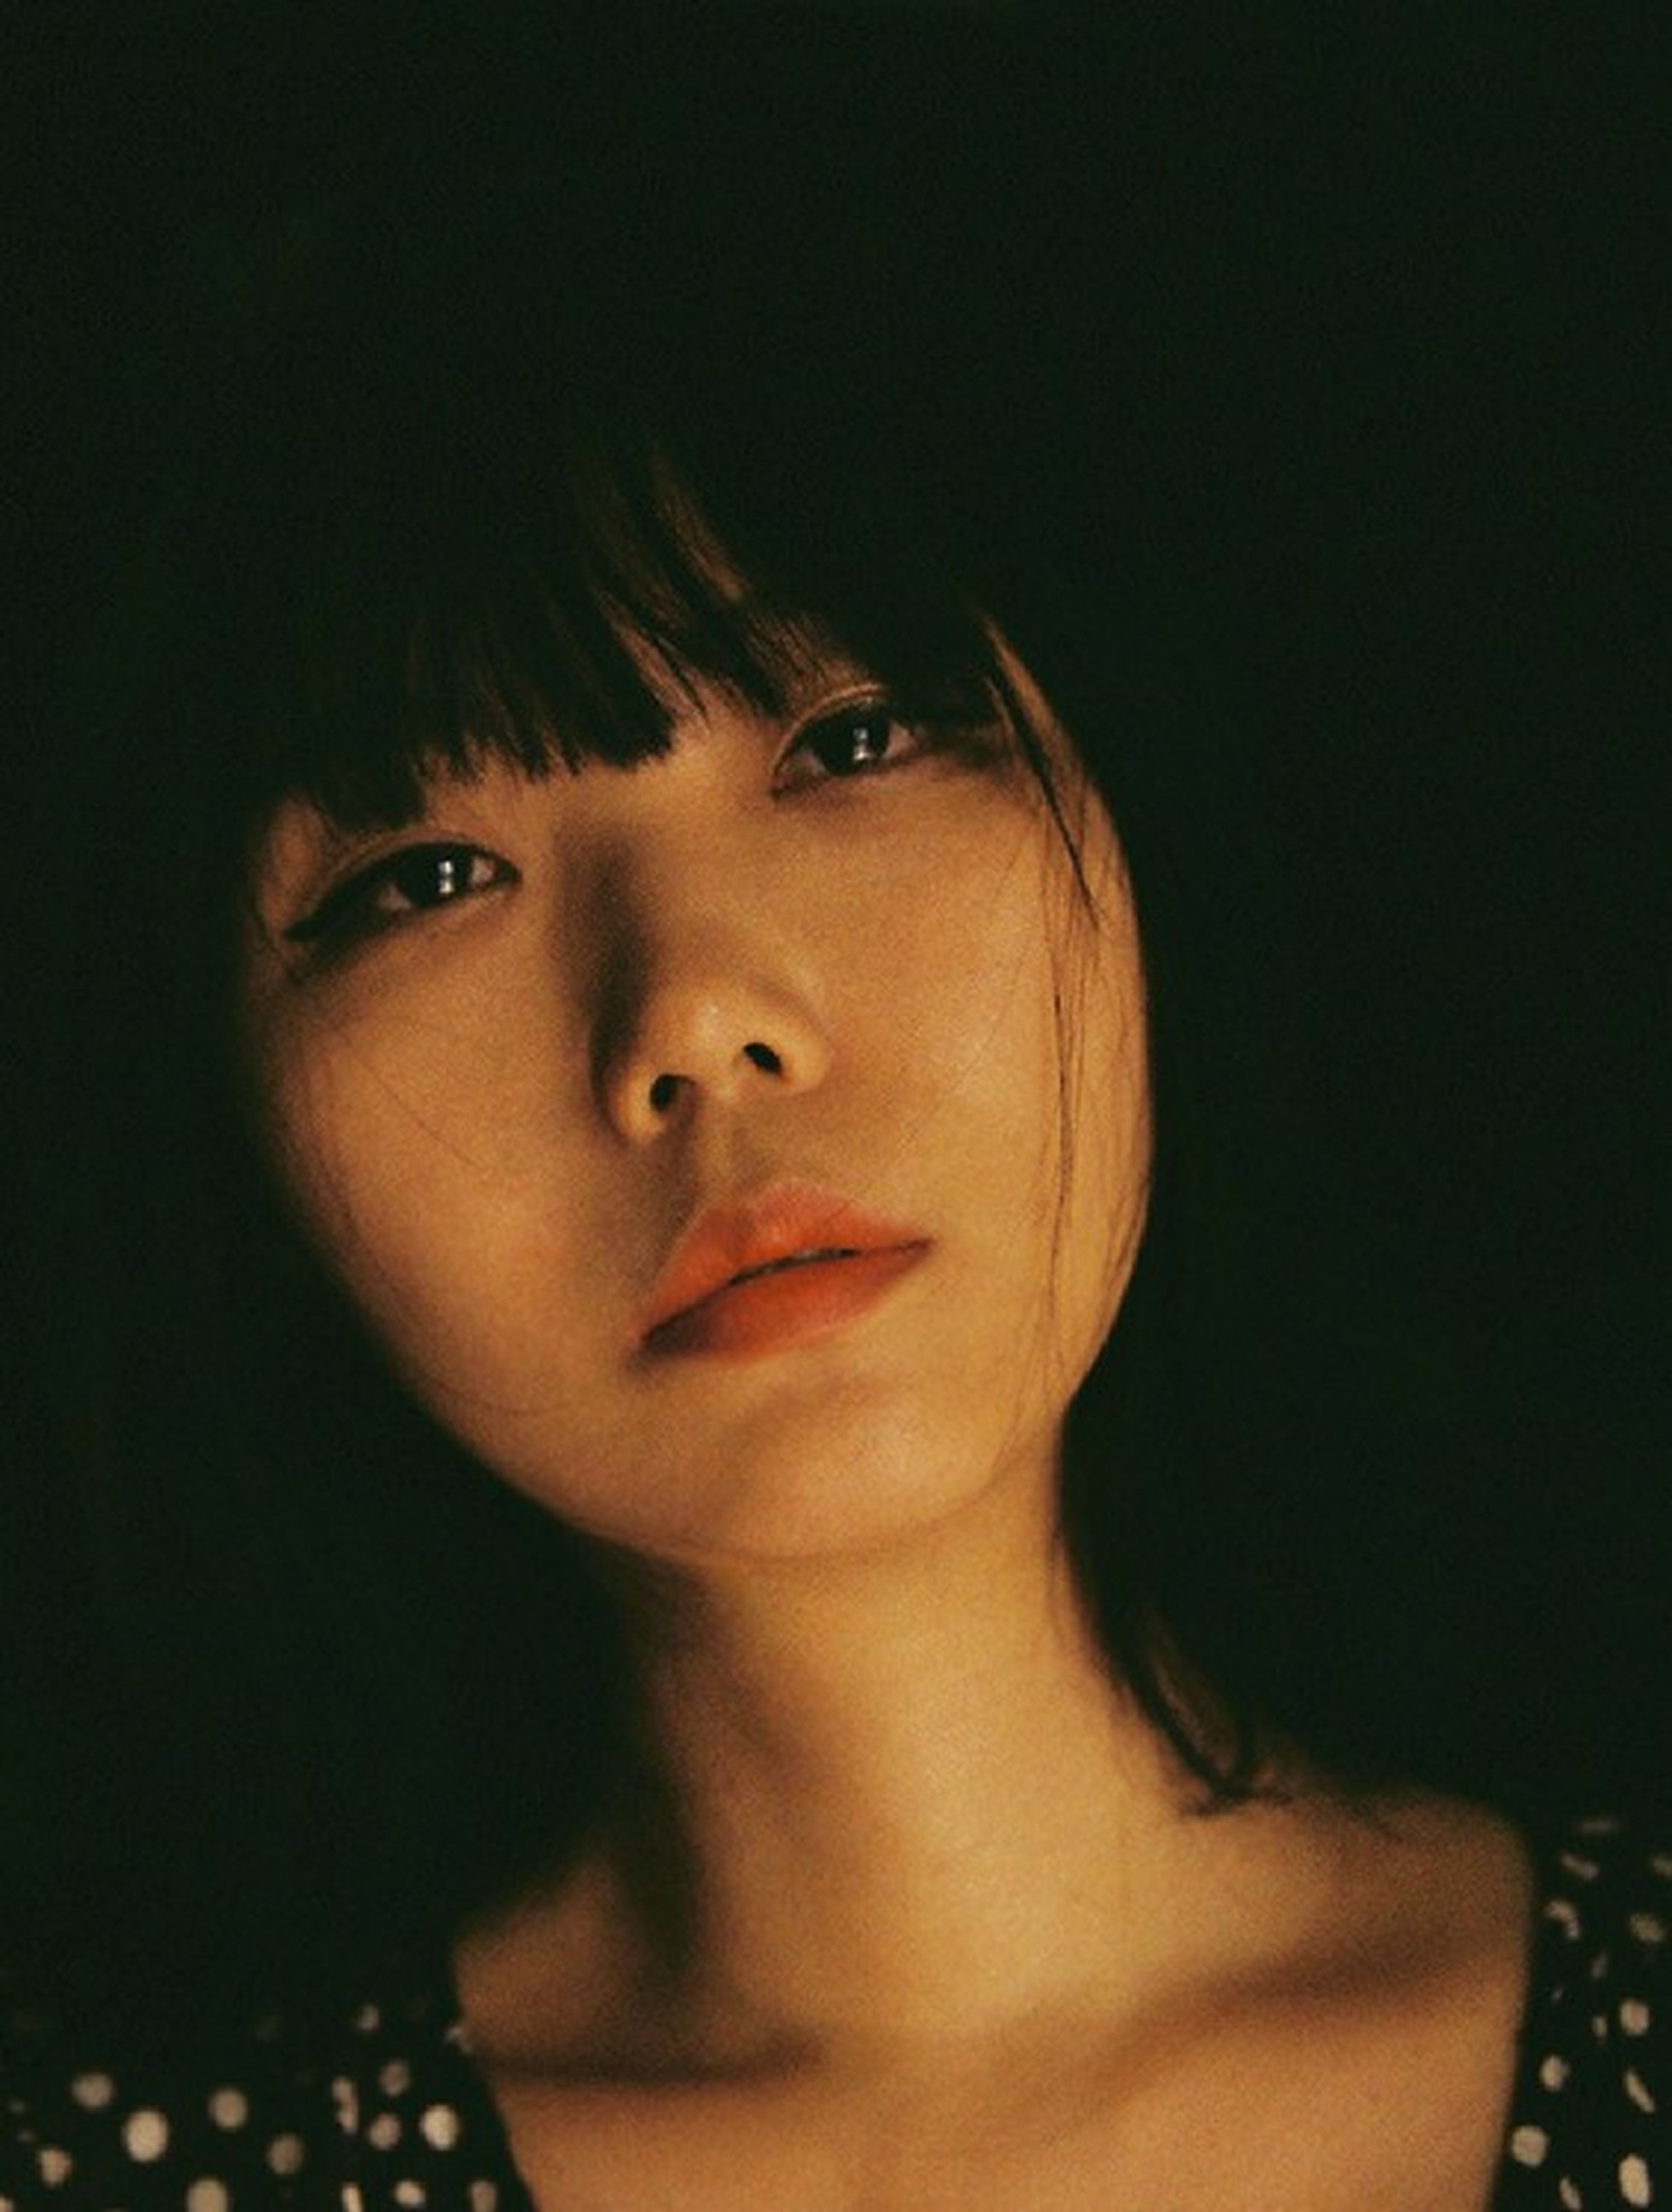 headshot, portrait, one person, front view, young women, young adult, looking at camera, indoors, women, lifestyles, real people, beautiful woman, close-up, beauty, looking, hairstyle, hair, leisure activity, contemplation, human face, black background, bangs